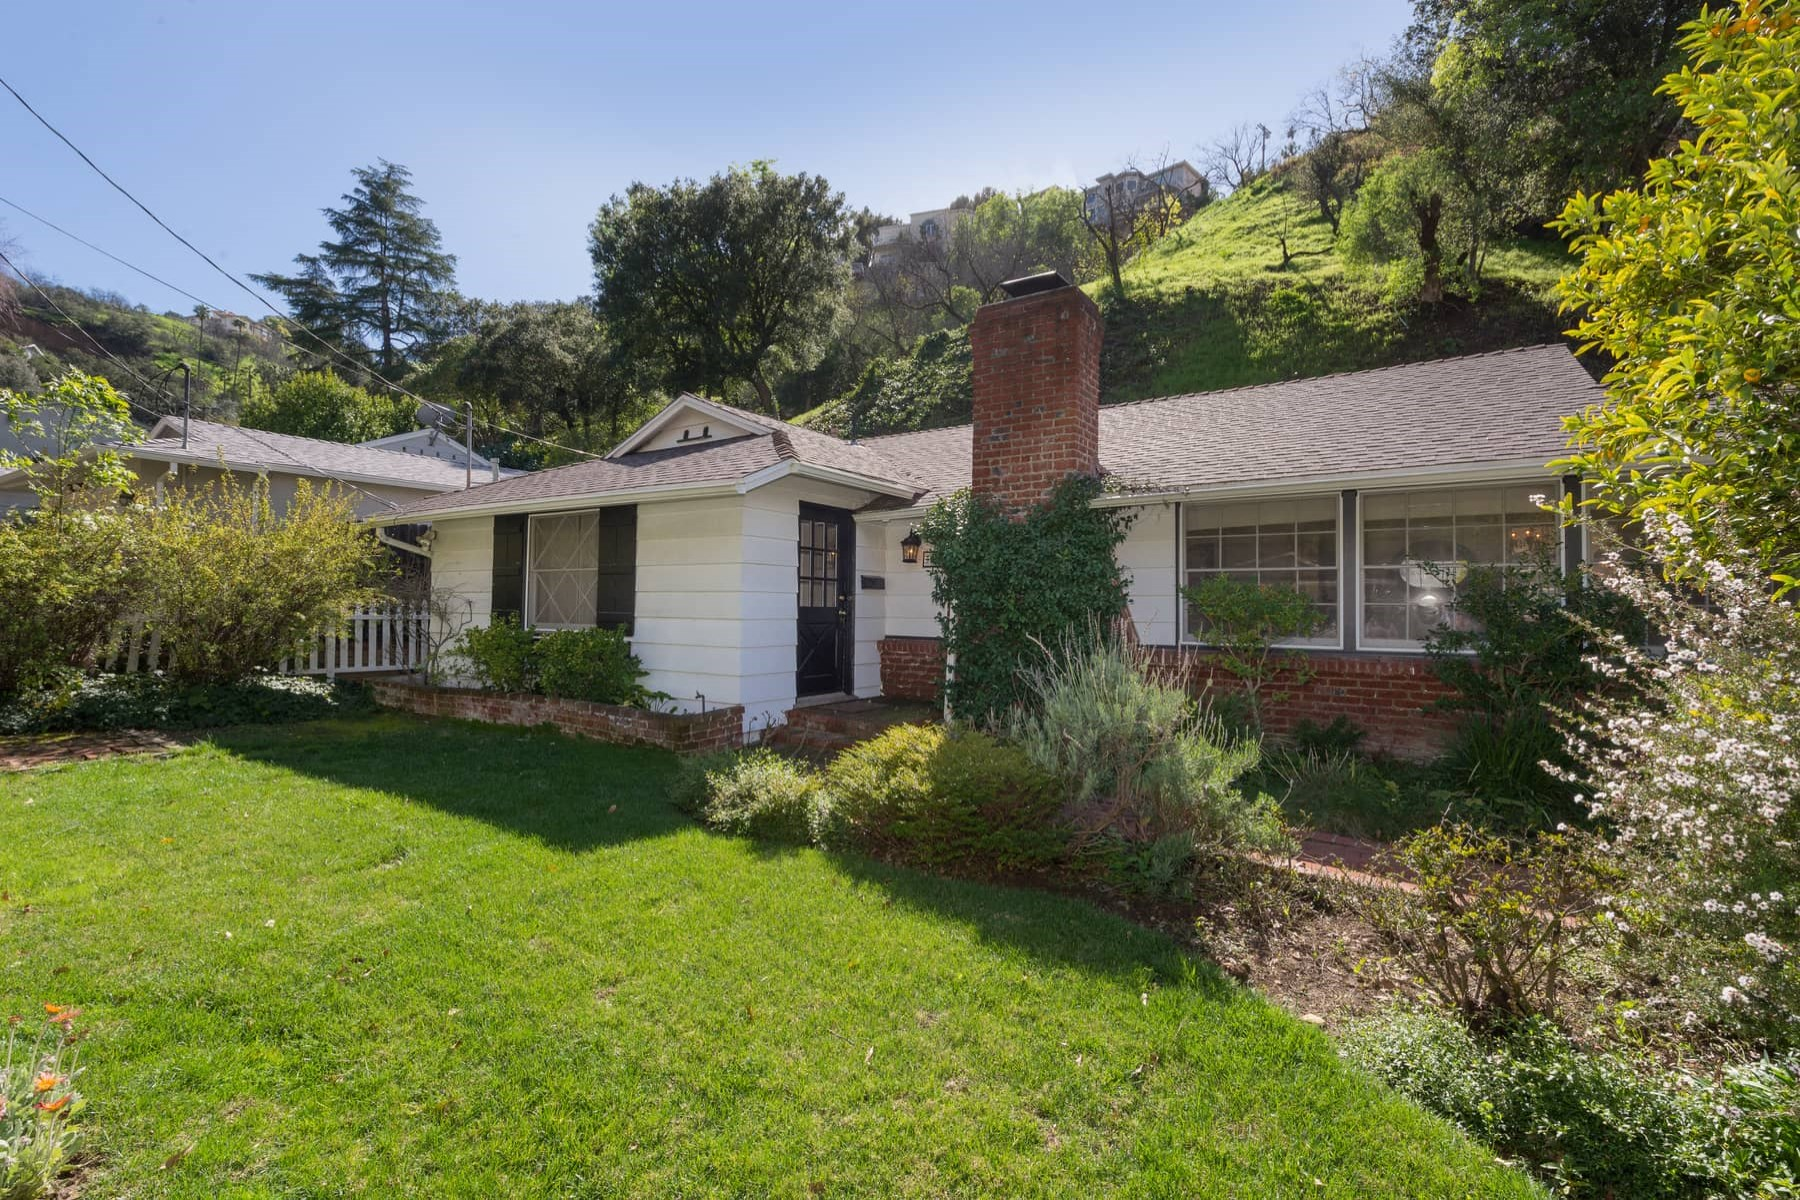 Single Family Home for Sale at 3681 Goodland Avenue Studio City, Los Angeles, California, 91604 United States